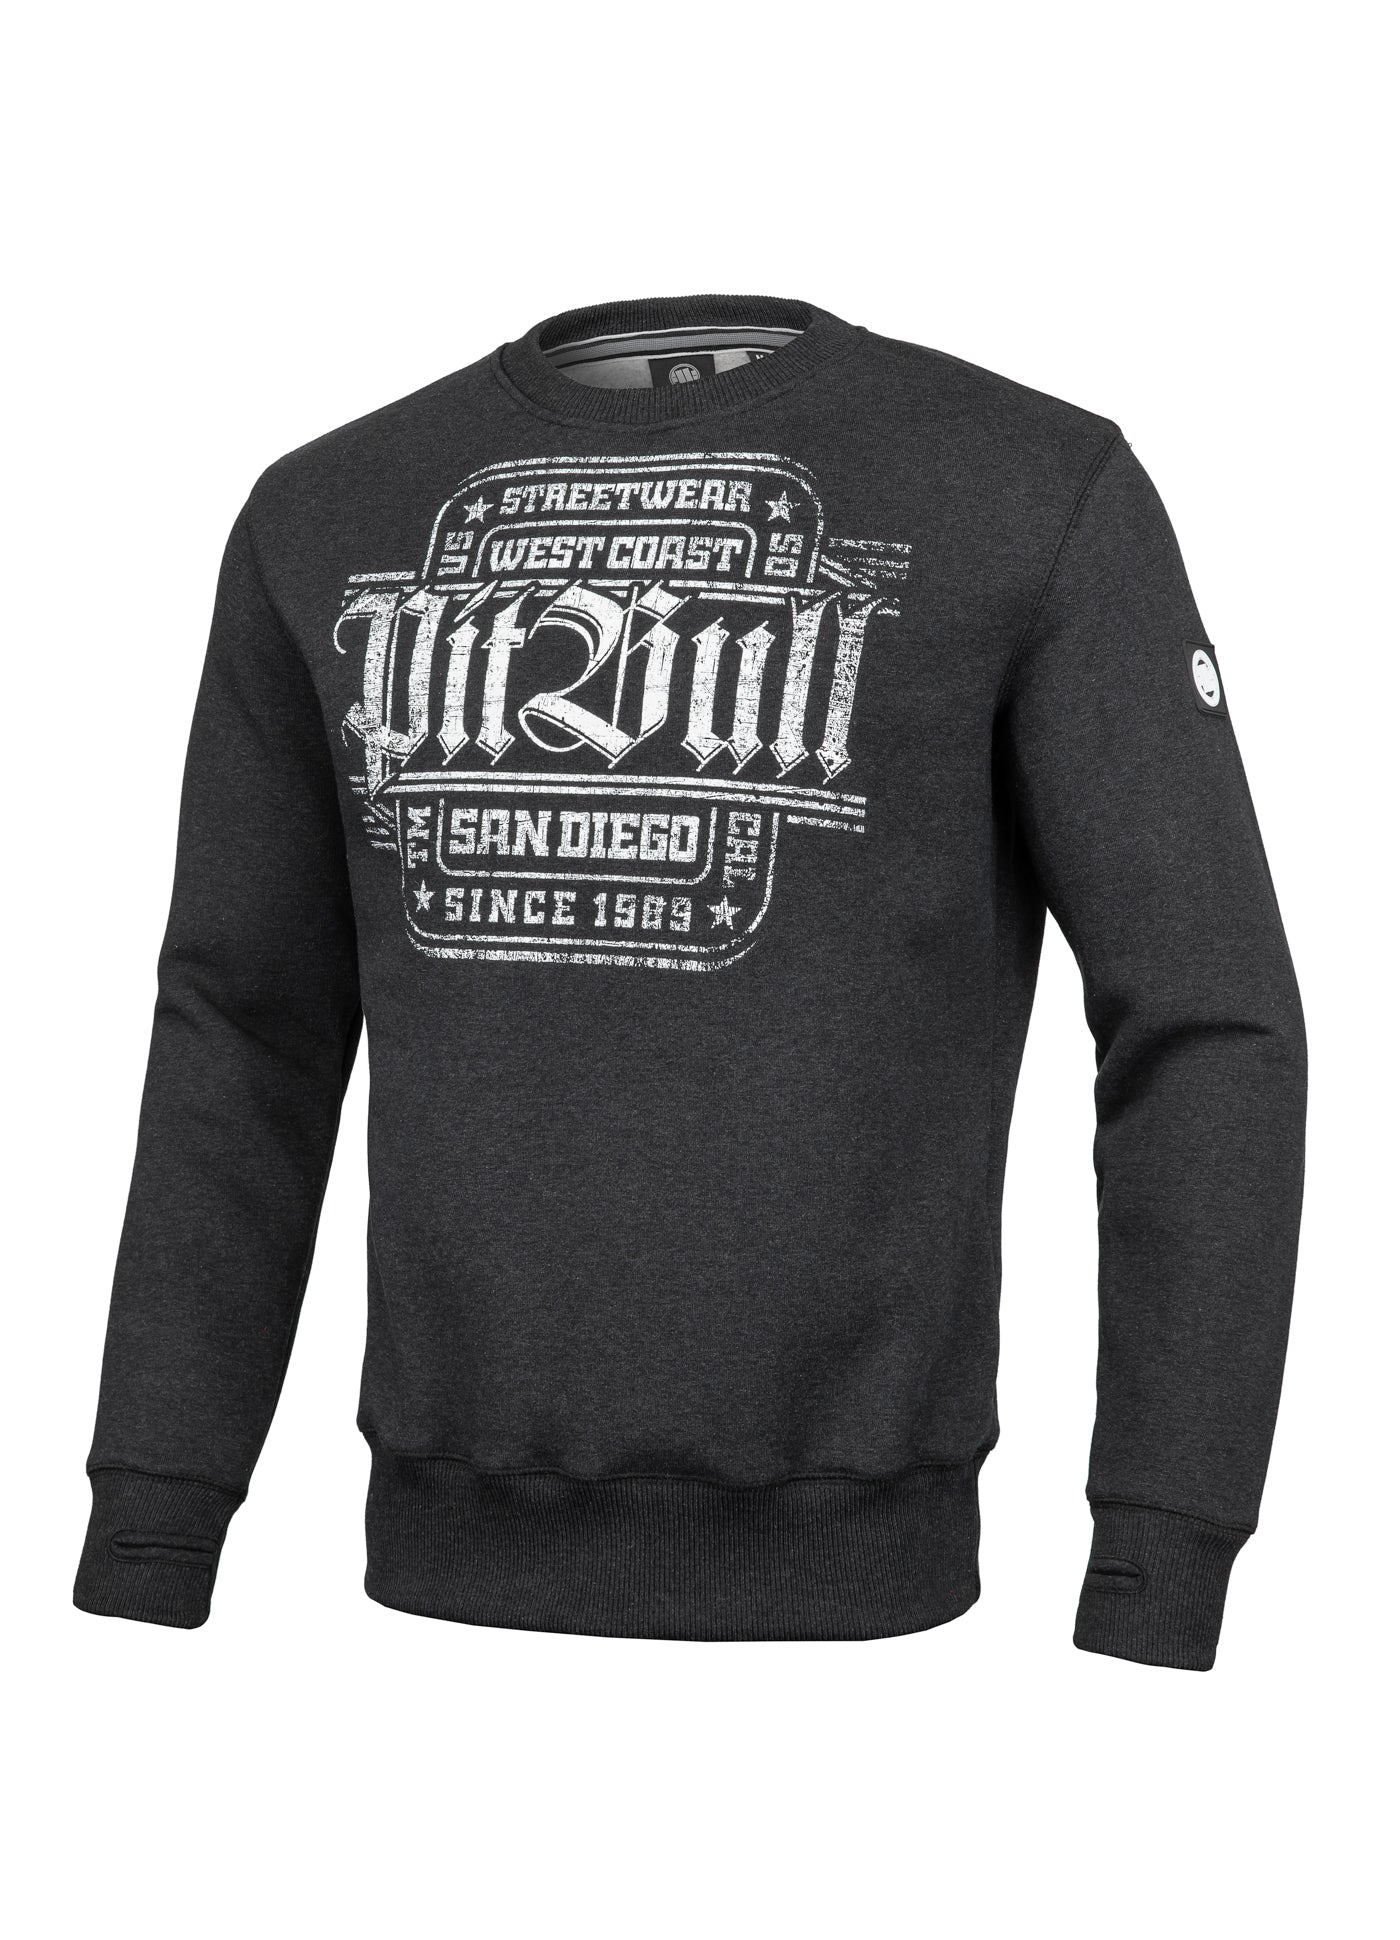 Crewneck SAN DIEGO IV Charcoal - Pitbull West Coast  UK Store